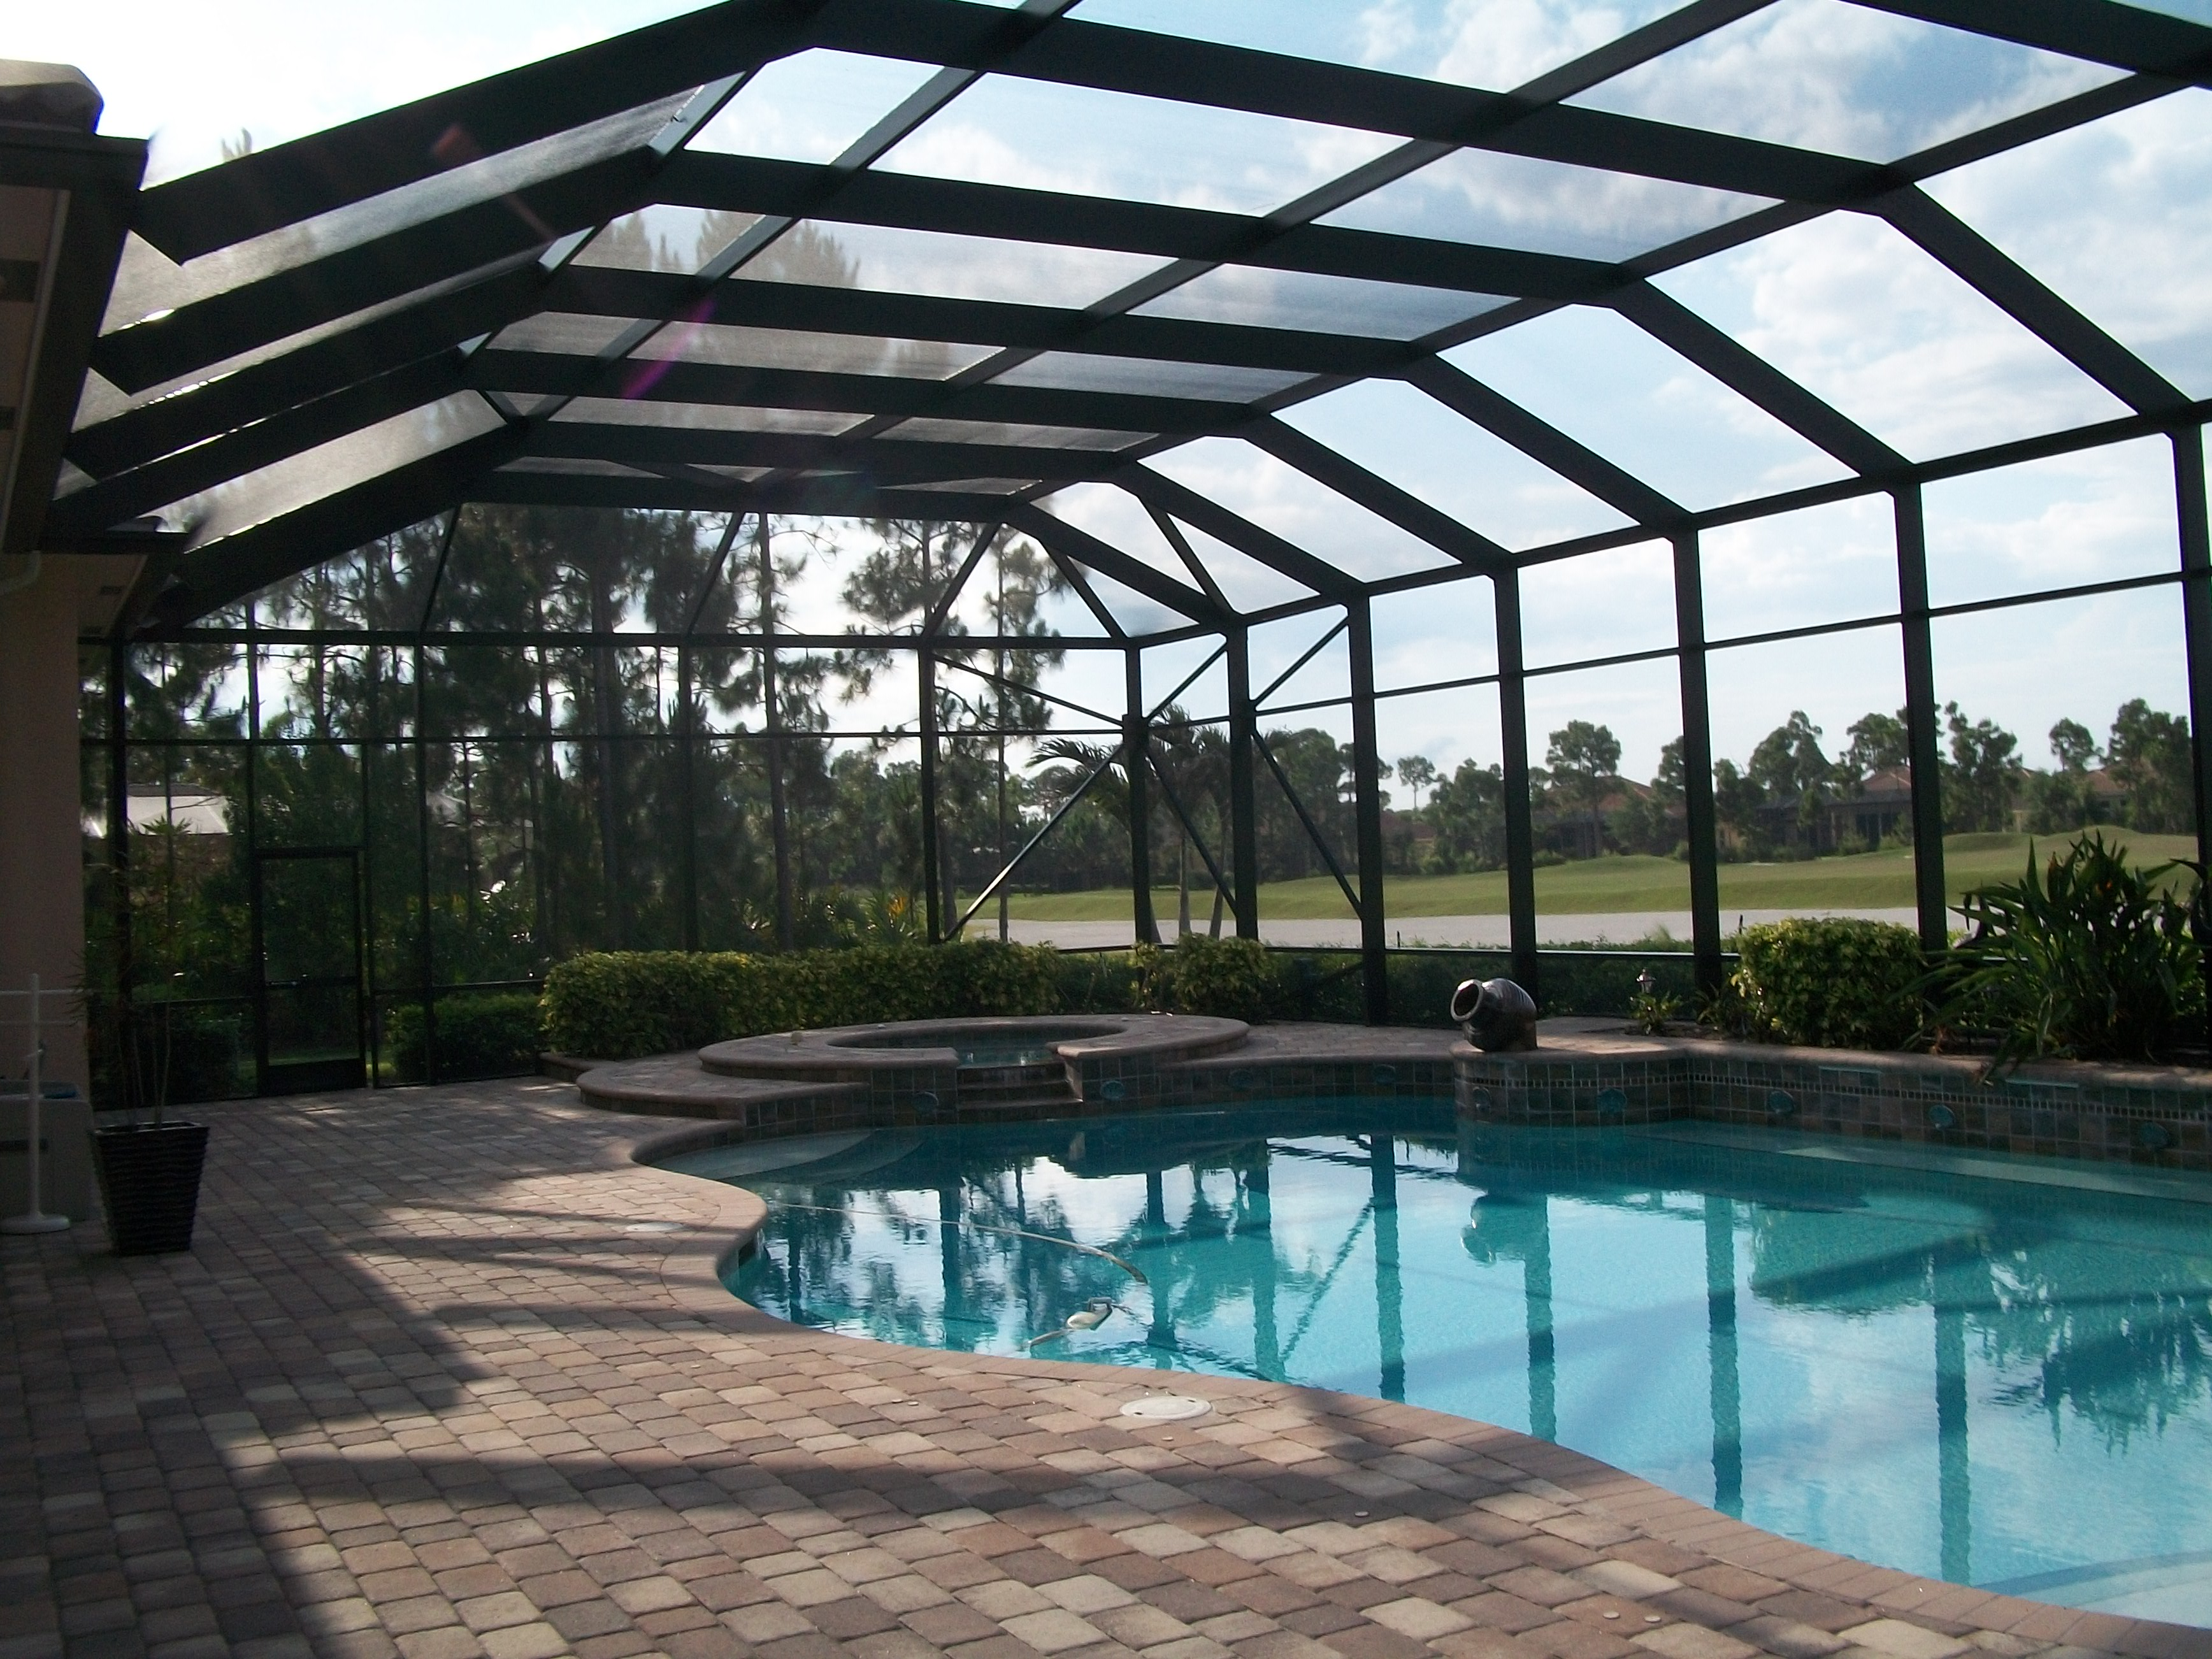 Stylish and luxurious types of pool enclosures